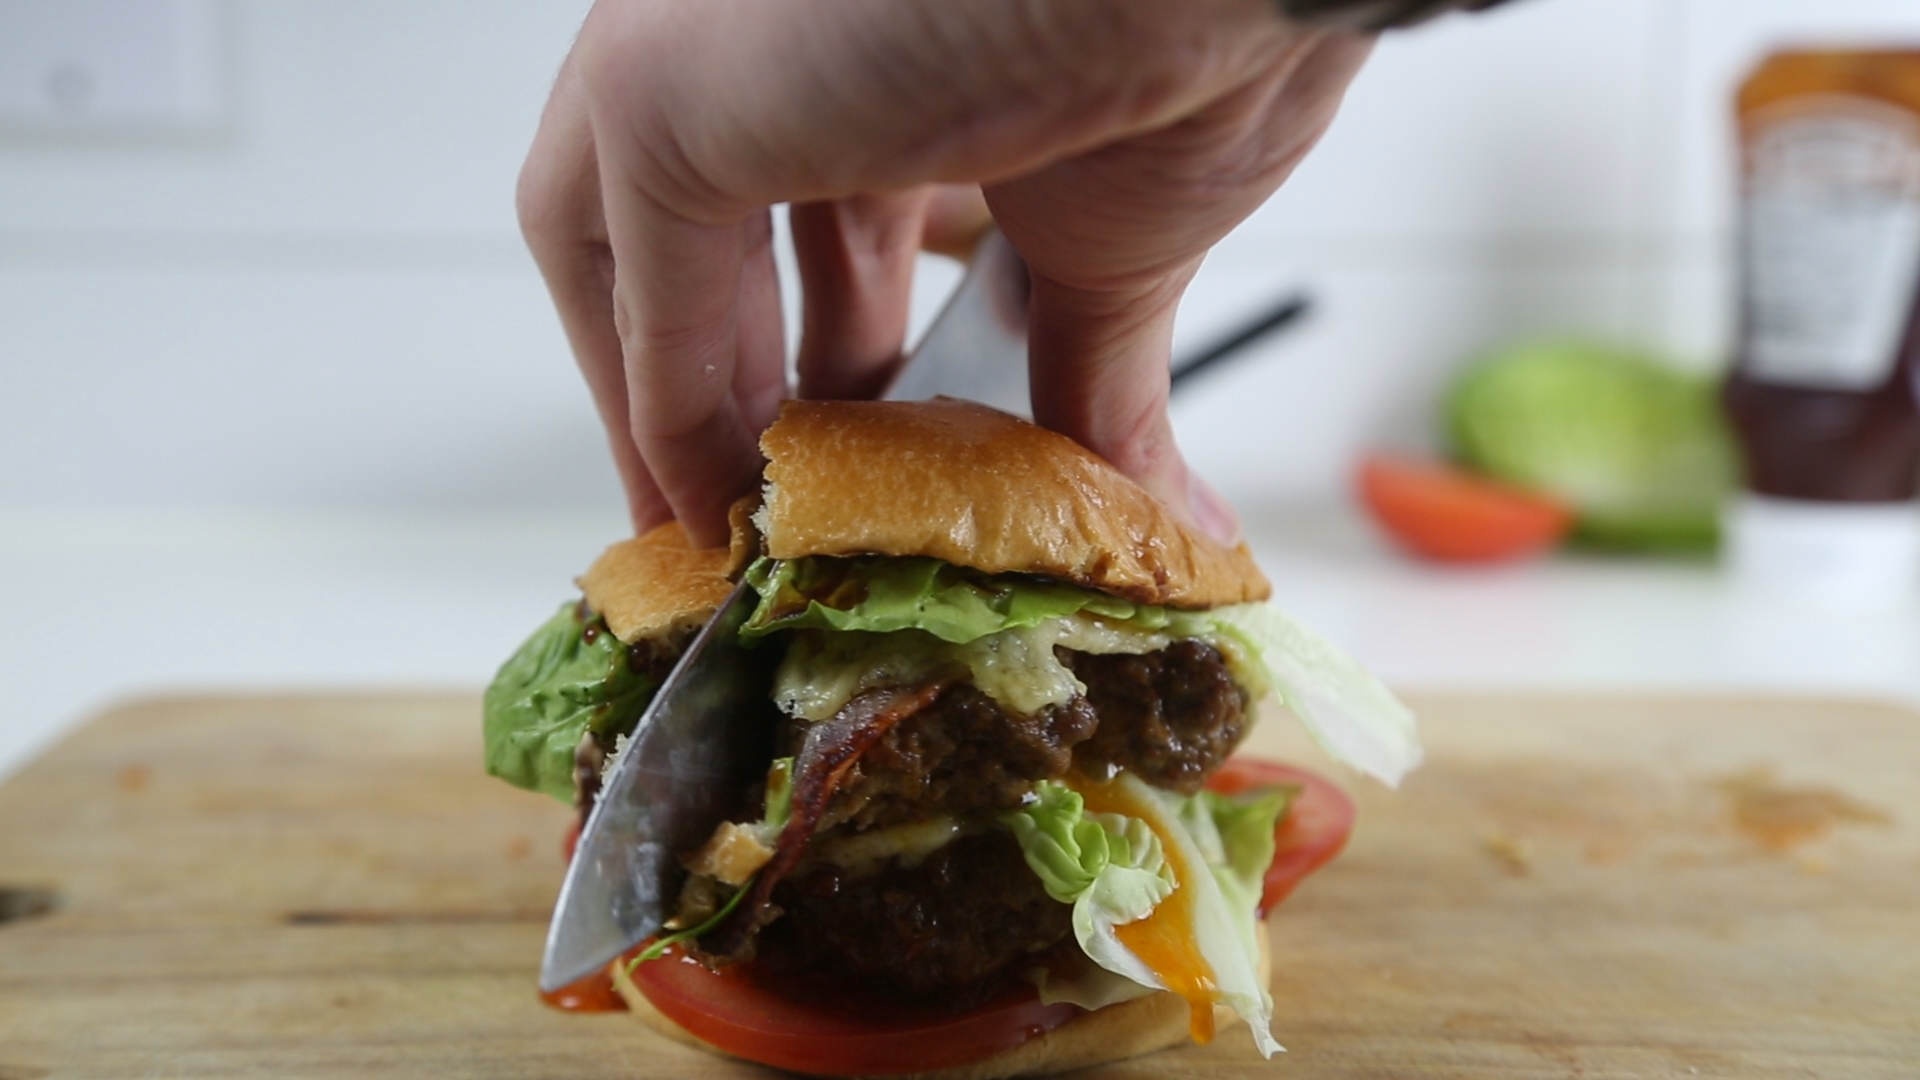 Heres How To Make The Dr Pepper BBQ Burger 1B1A7823.MOV.10 57 32 01.Still001